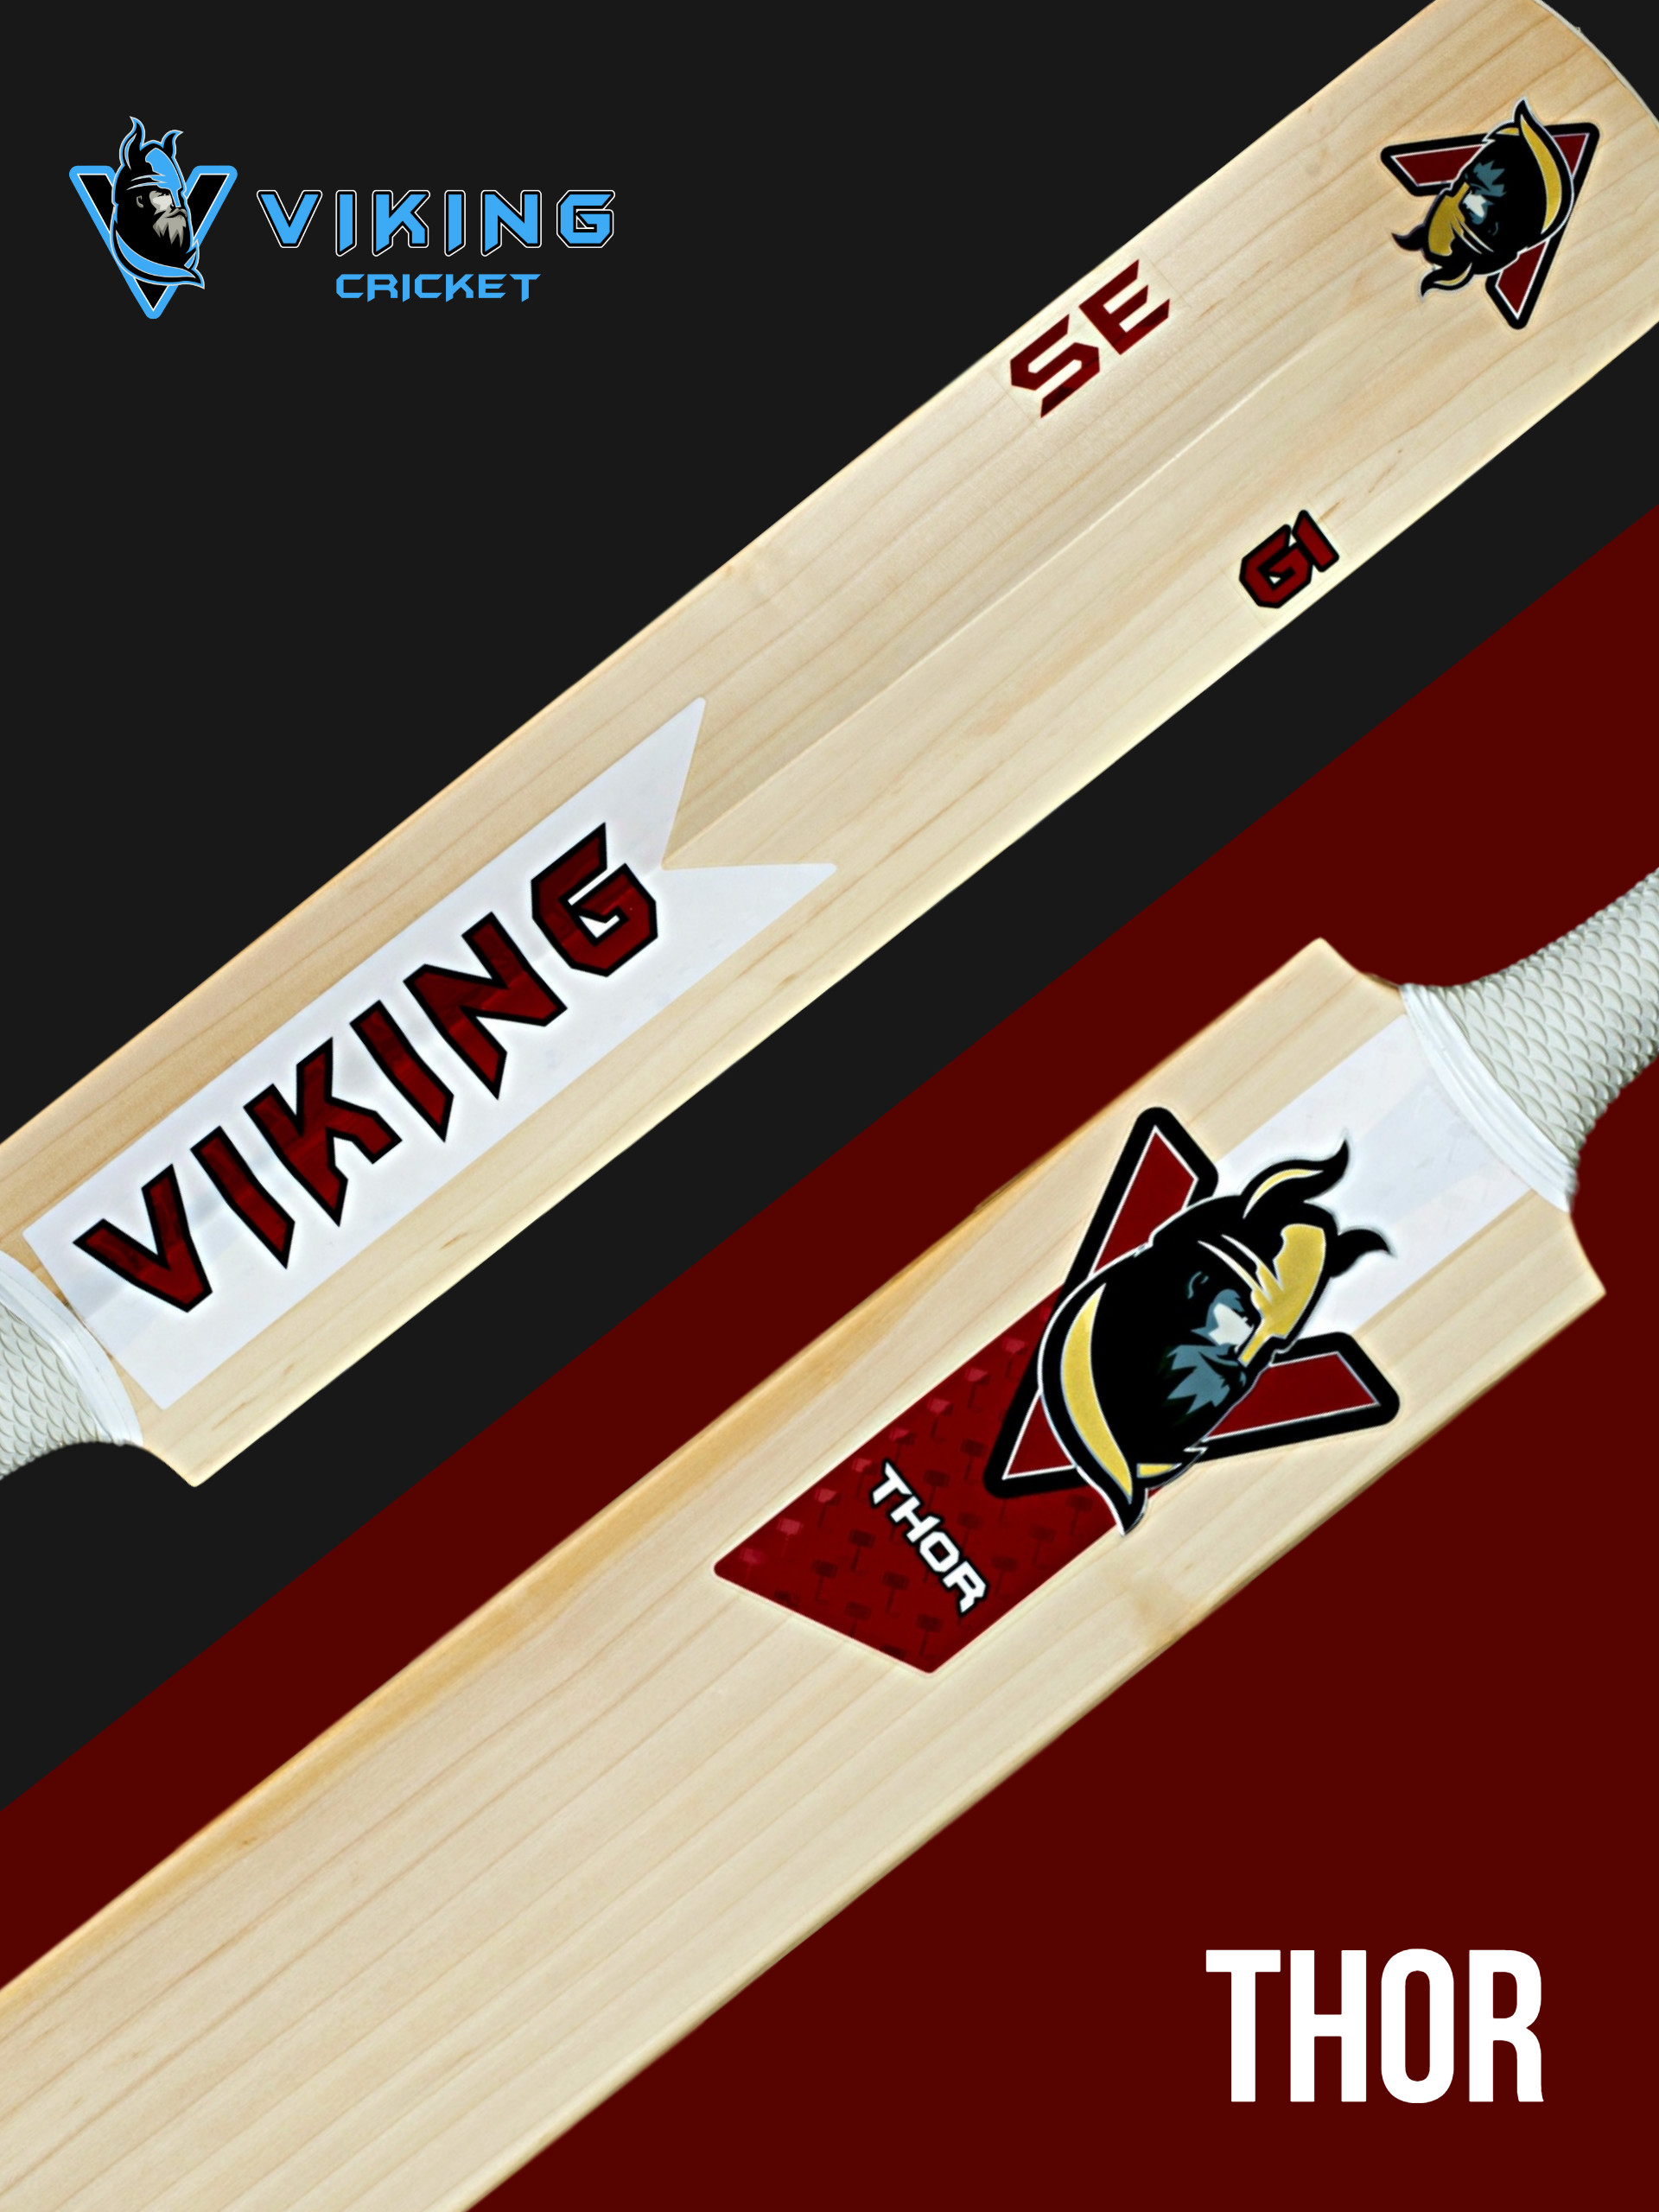 - There can't be many people who don't know who Thor is. The hammer wielding God associated with thunder, lightning and strength.Our Thor cricket bat will give you devastating hitting power, with it's thick edges and wide spine area you'll have all the destruction to find those boundaries with it's Viking duck bill shape this bat is balanced to perfection due to it's weight distribution.The Thor comes in weights from 2lb10oz - 3lb+we have 3 grades SE,PRO & CLUB details about grades of bat can be found on our useful info pageLike all Viking bats it has a snake/scale grip, toe guard and decals to die for.The Thor features a 3D embossed logo and a matt and gloss finish.This bat doesn't just look good, it's made to destroy bowlers.